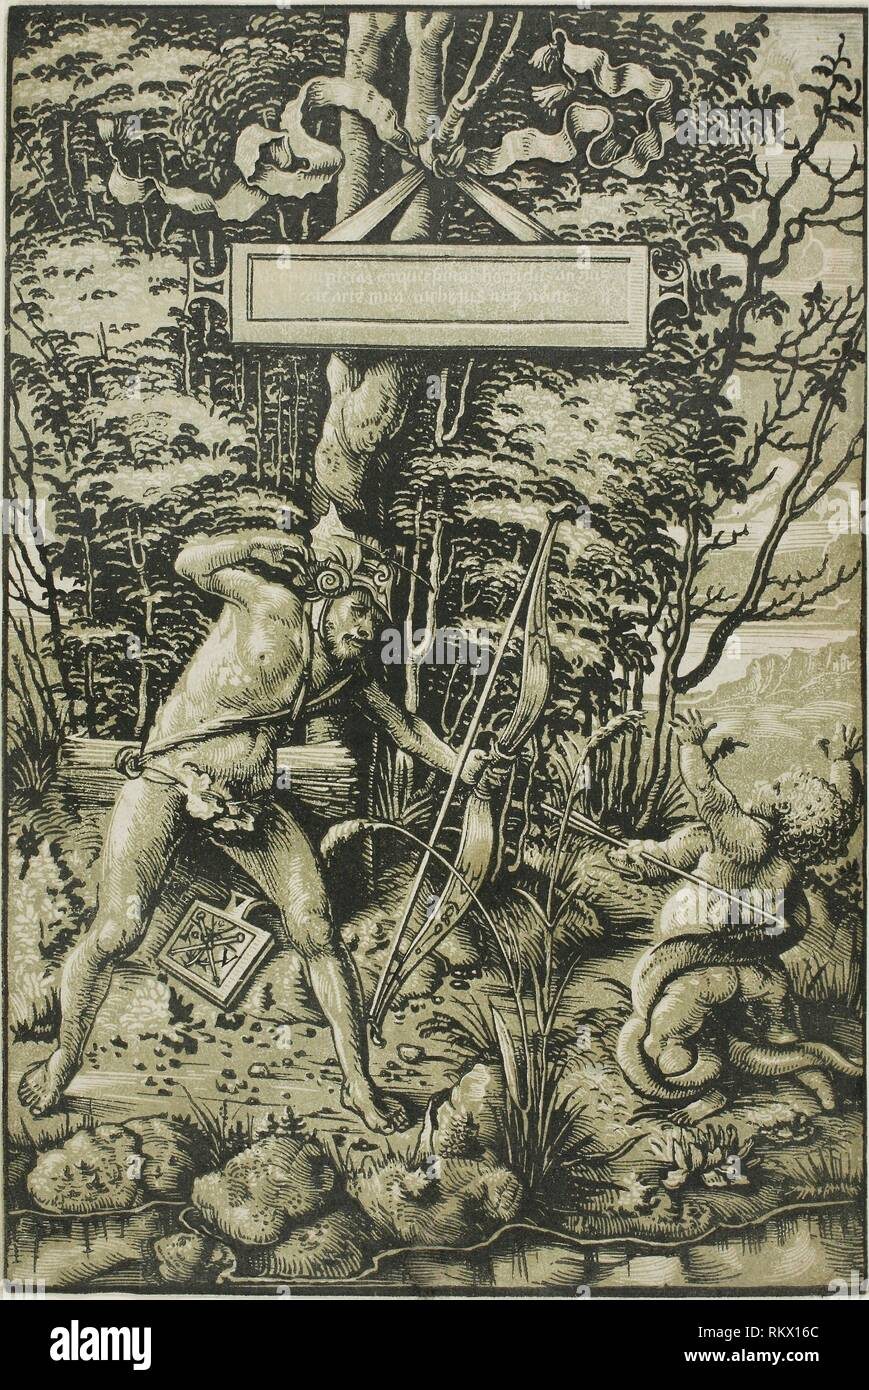 Alcon Slaying the Serpent - 1510-15 - Hans Wechtlin, I German, 1480/85-after 1526 - Artist: Hans Wechtlin, I, Origin: Germany, Date: 1510-1515, - Stock Image